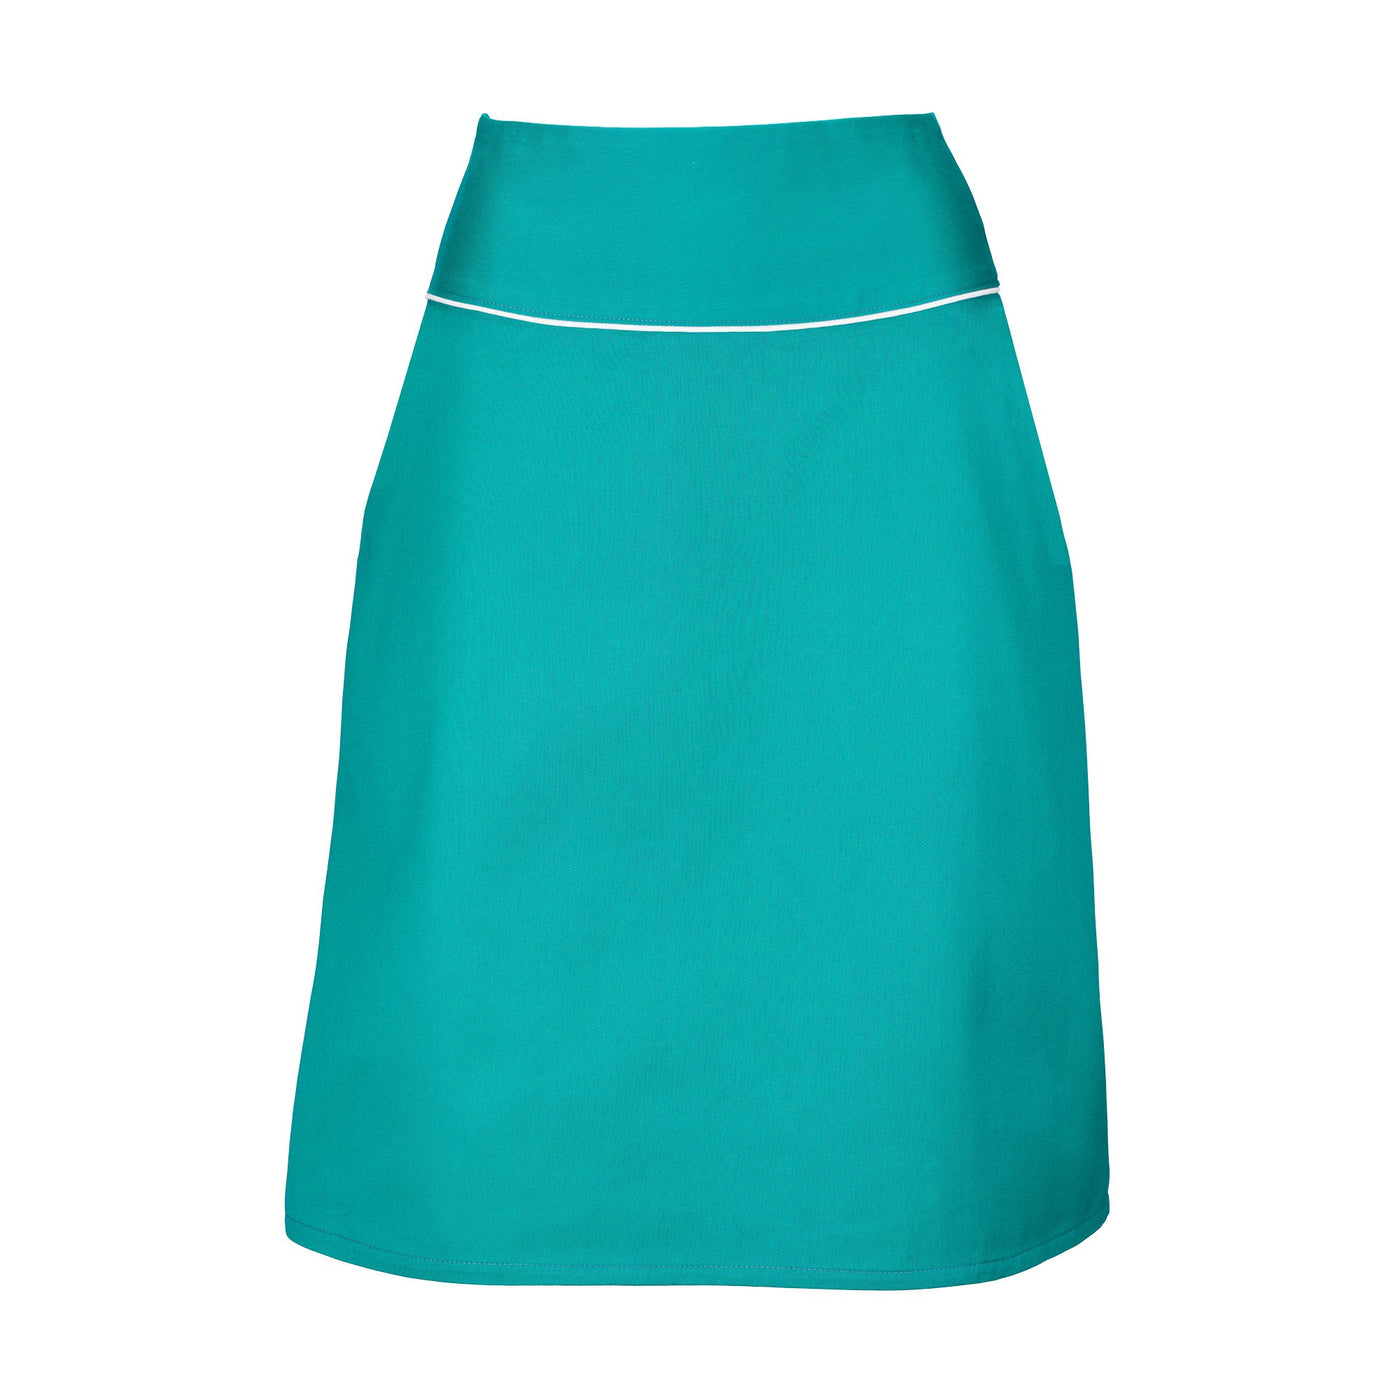 Turquoise A-Line Skirt Suzy